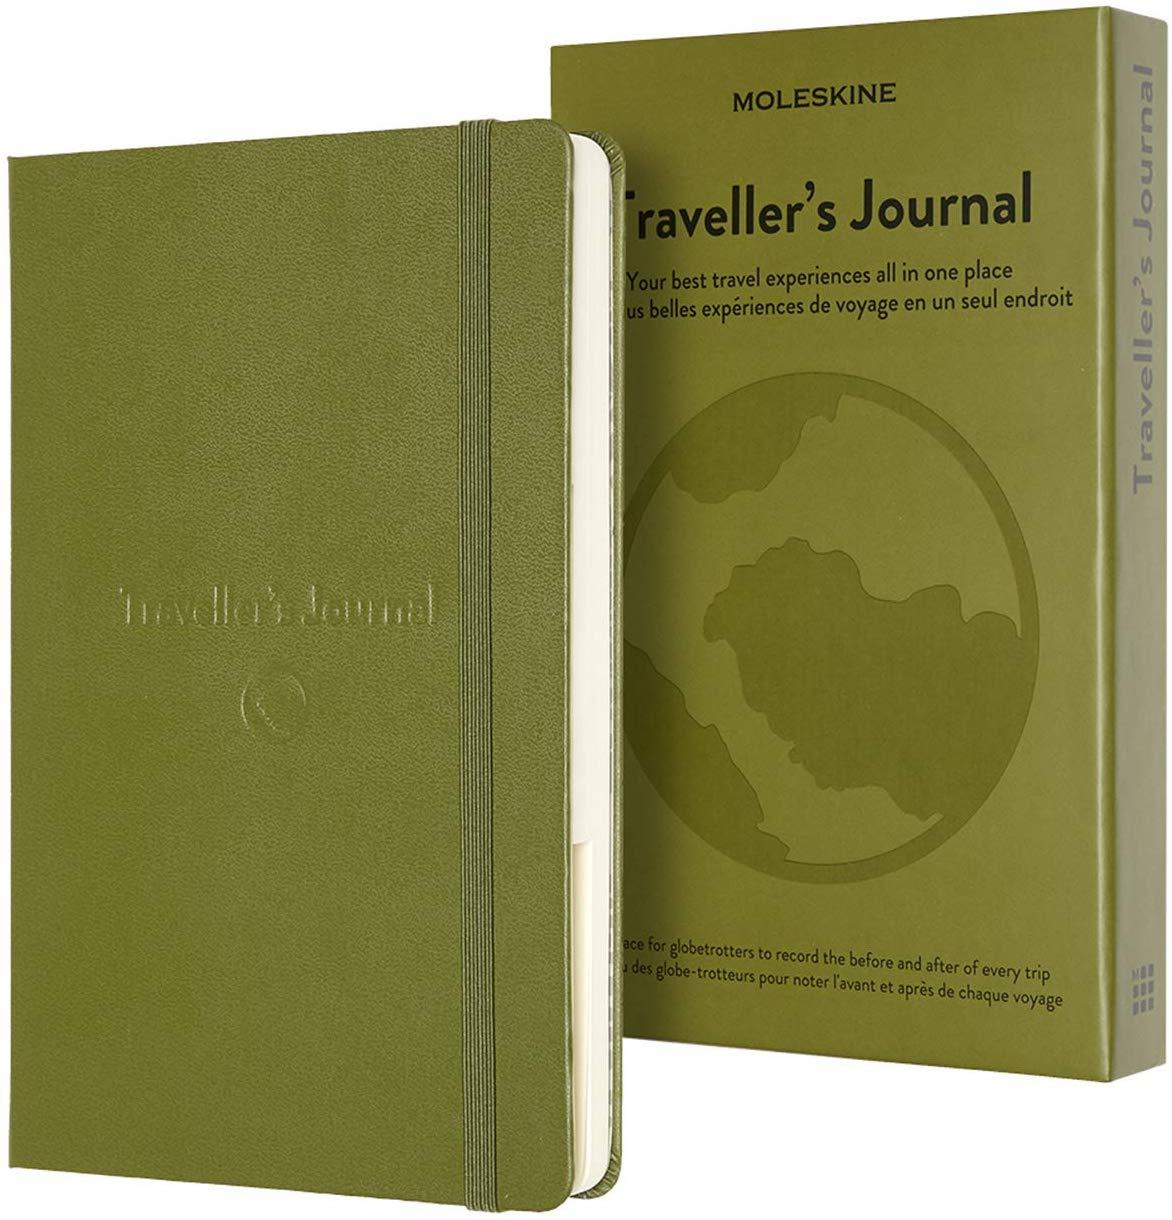 Travel Passion Journal by Moleskine